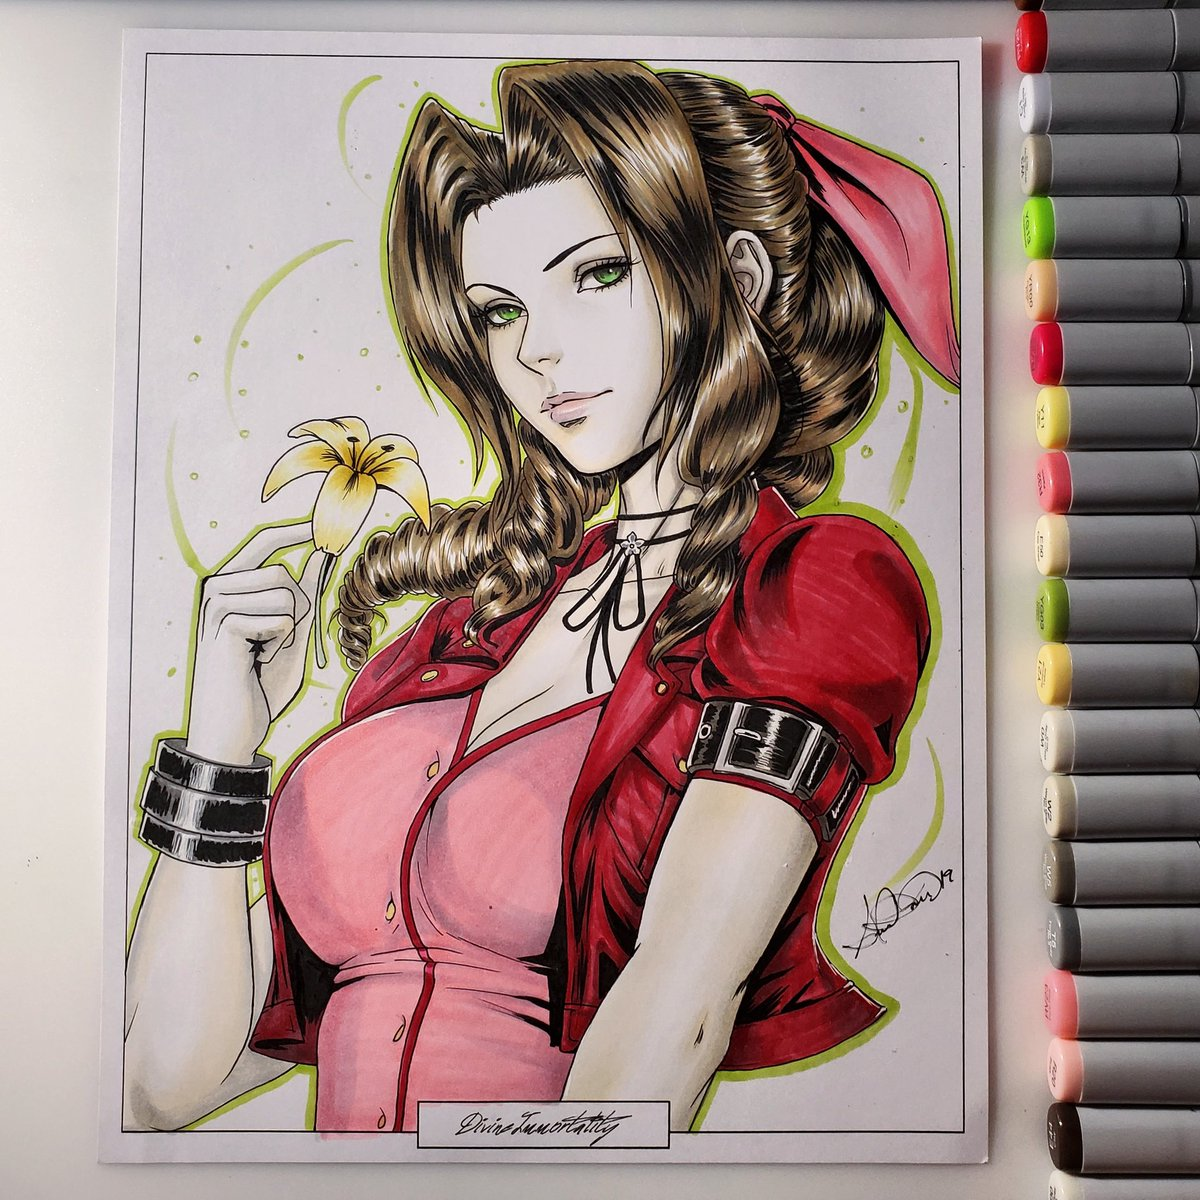 All done! Practice illustration of #Aerith from#finalfantasy7 with copics ❤ I hope you guys like it! #FF7R #FF7Remake #ff7 #FinalFantasyVII #FinalFantasyVIIRemake #aerith